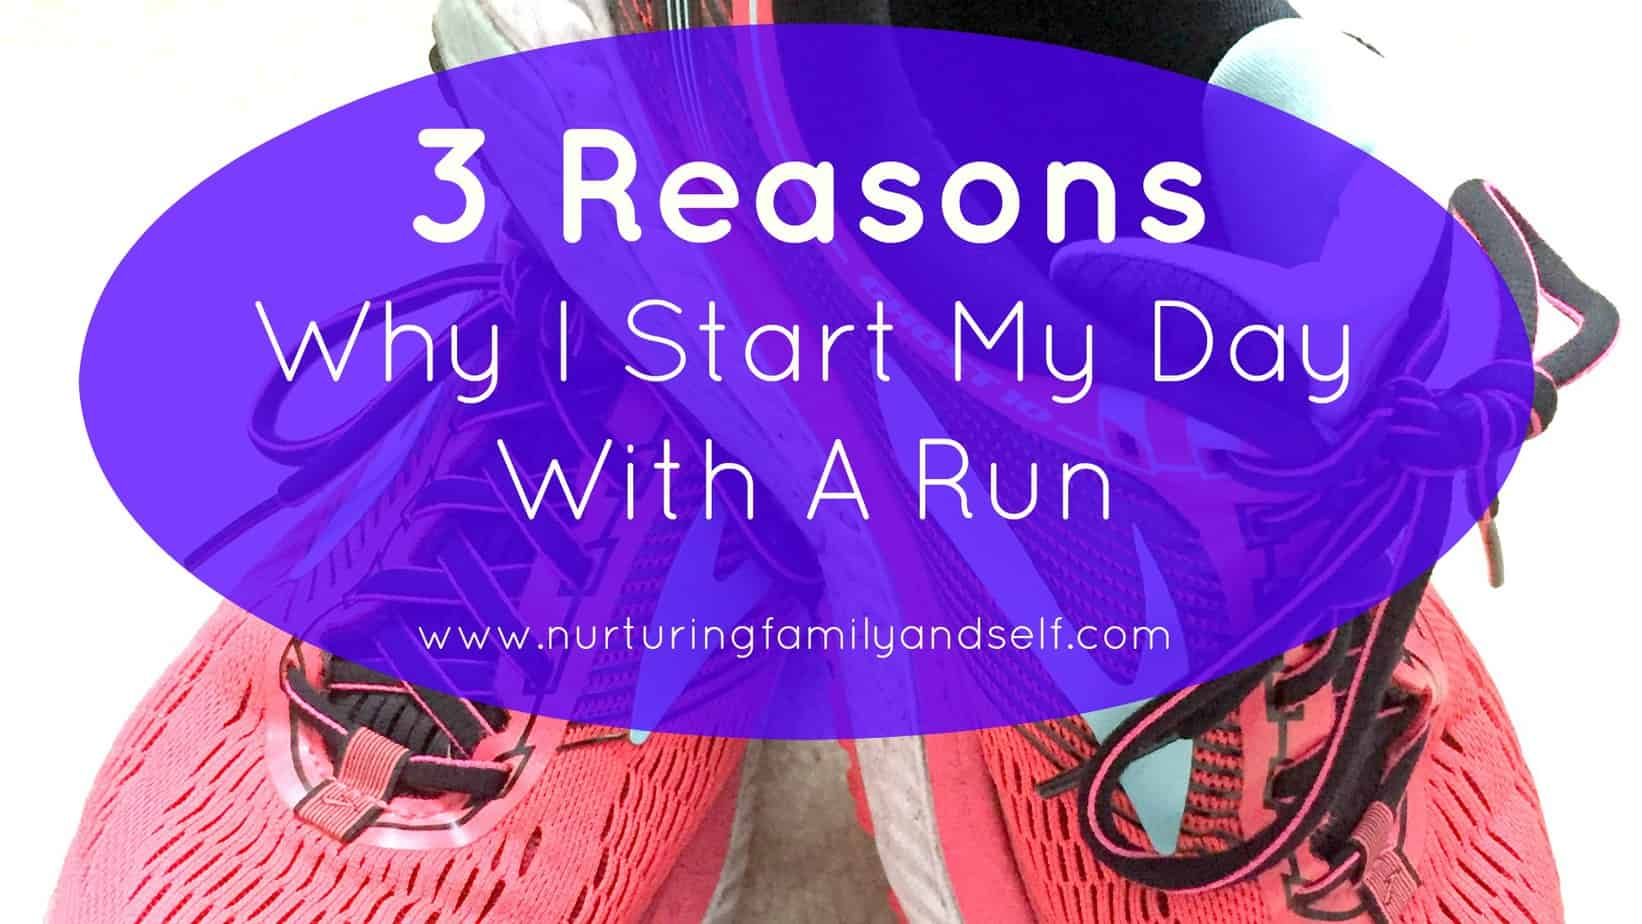 why-I-start-my-day-with-a-run-featured-image